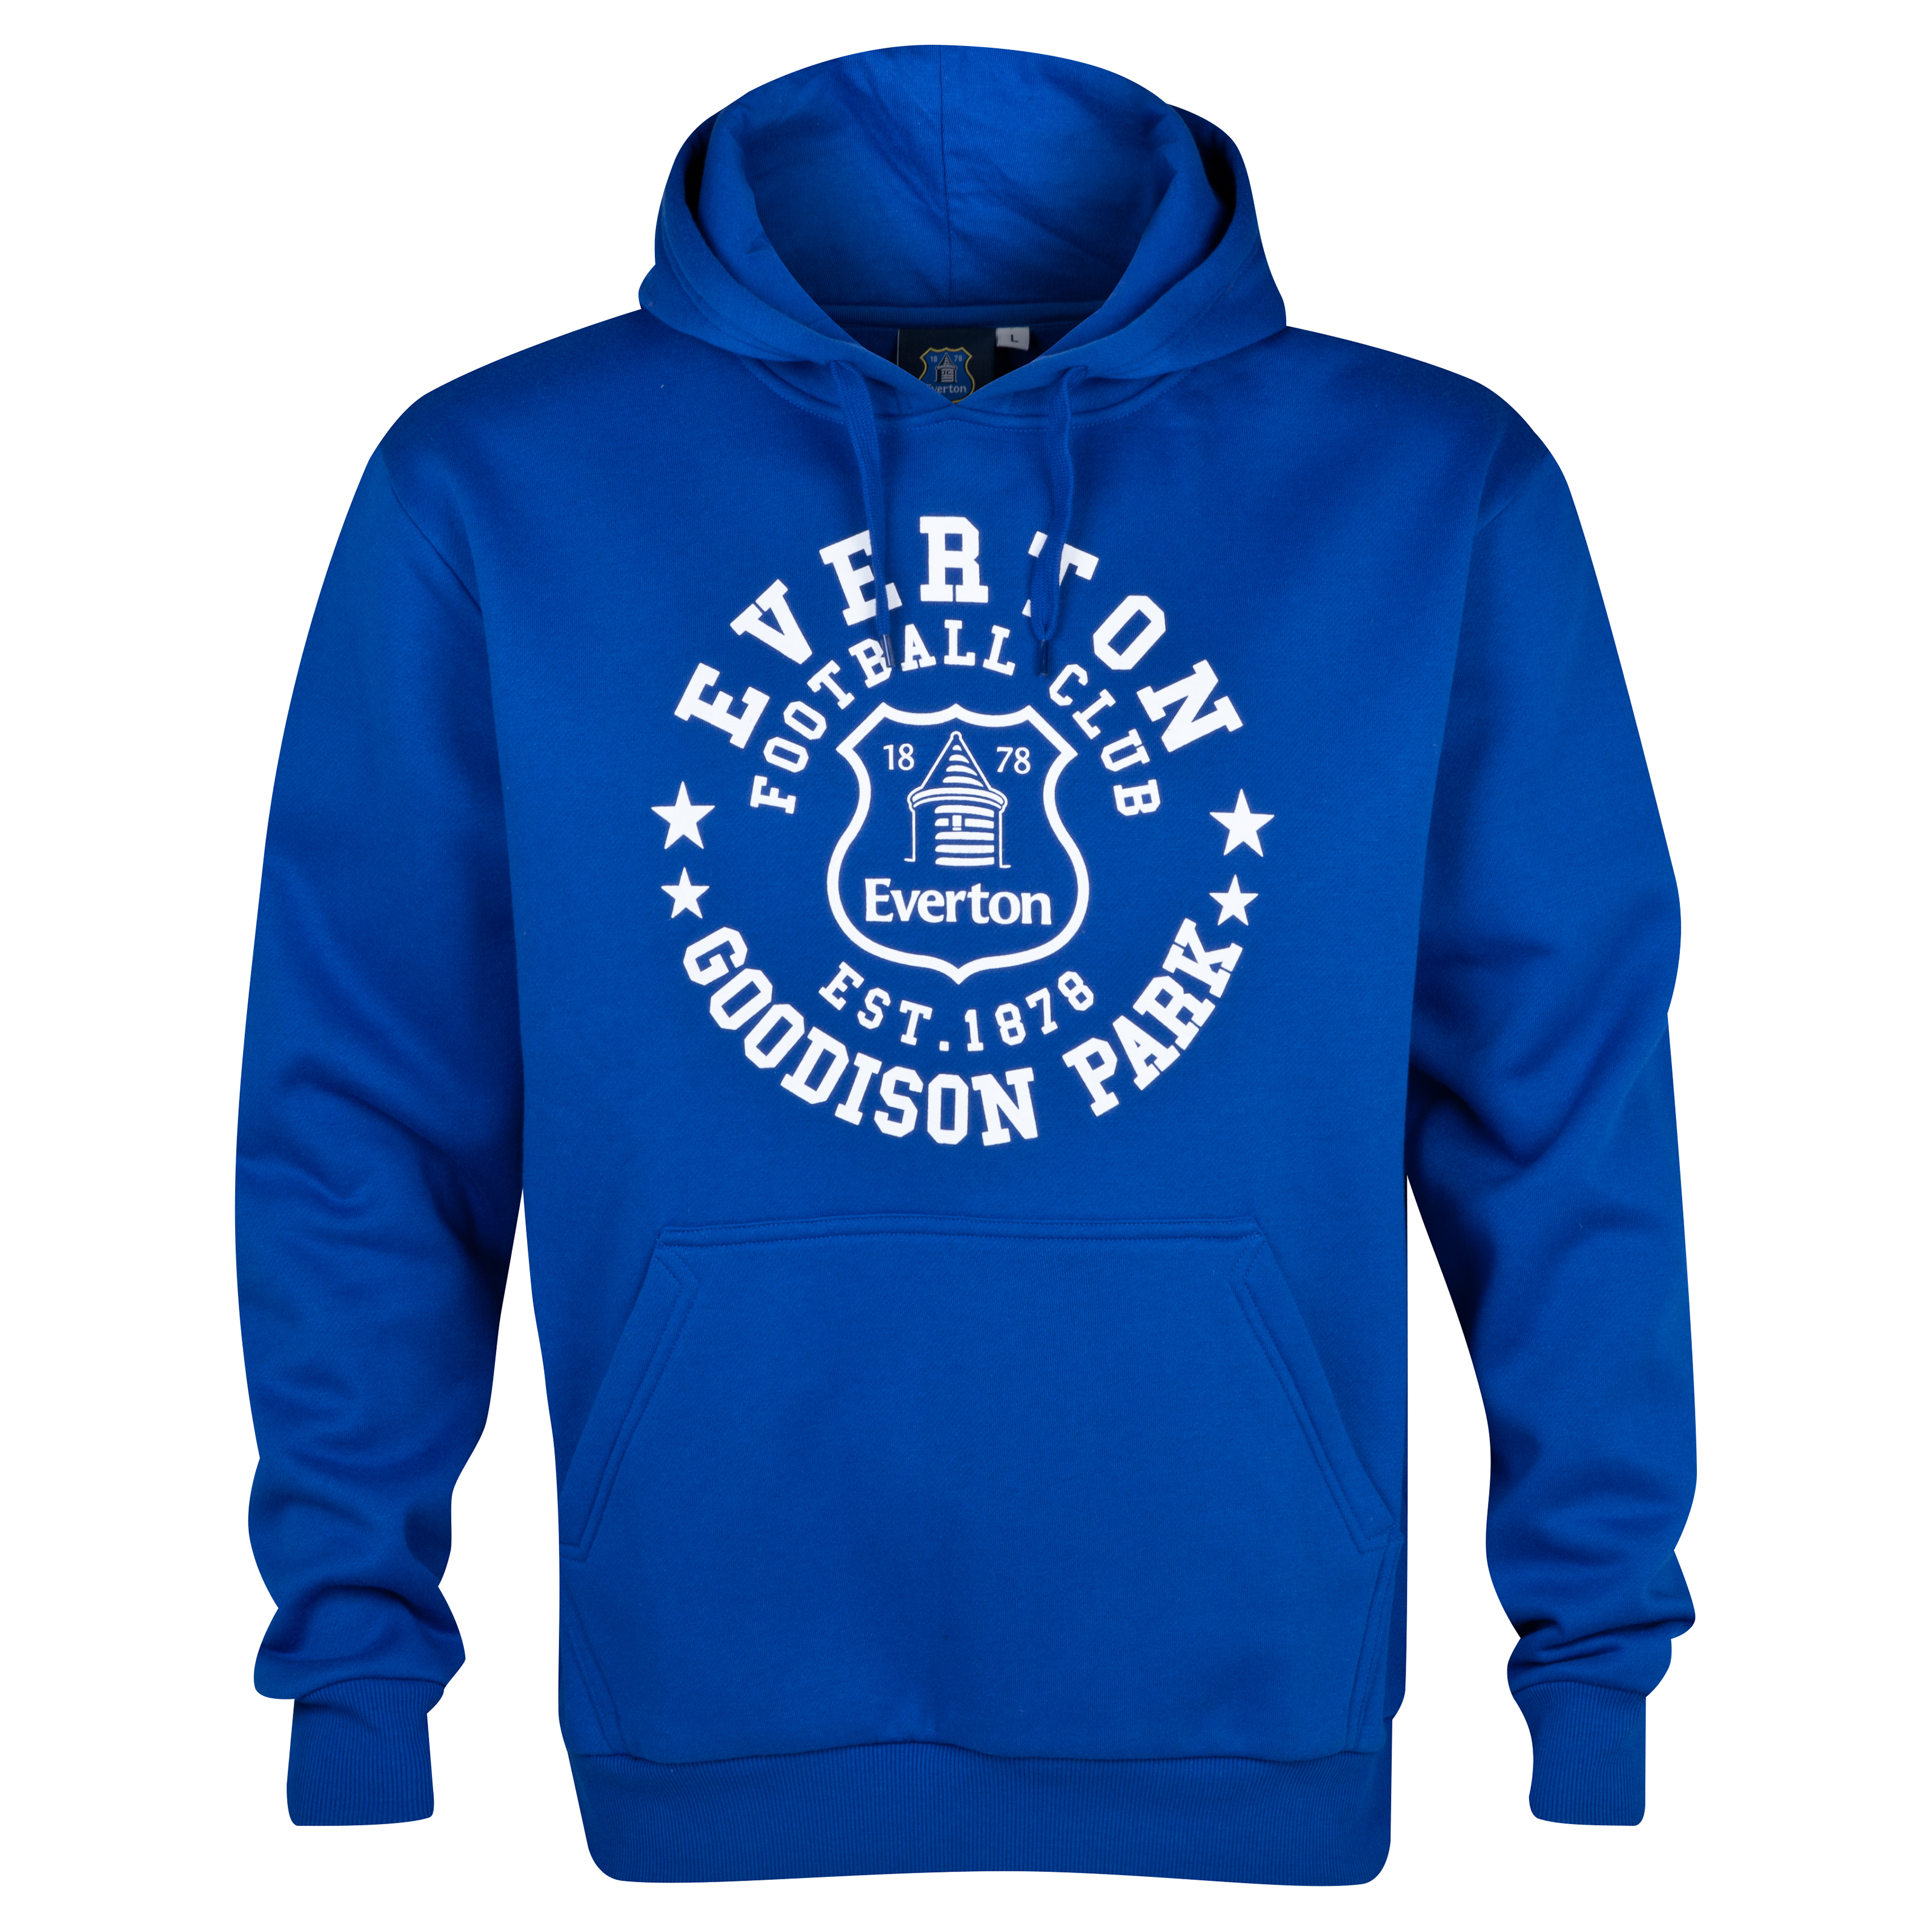 Everton Essentials Insignia Hoody - Mens Royal Blue